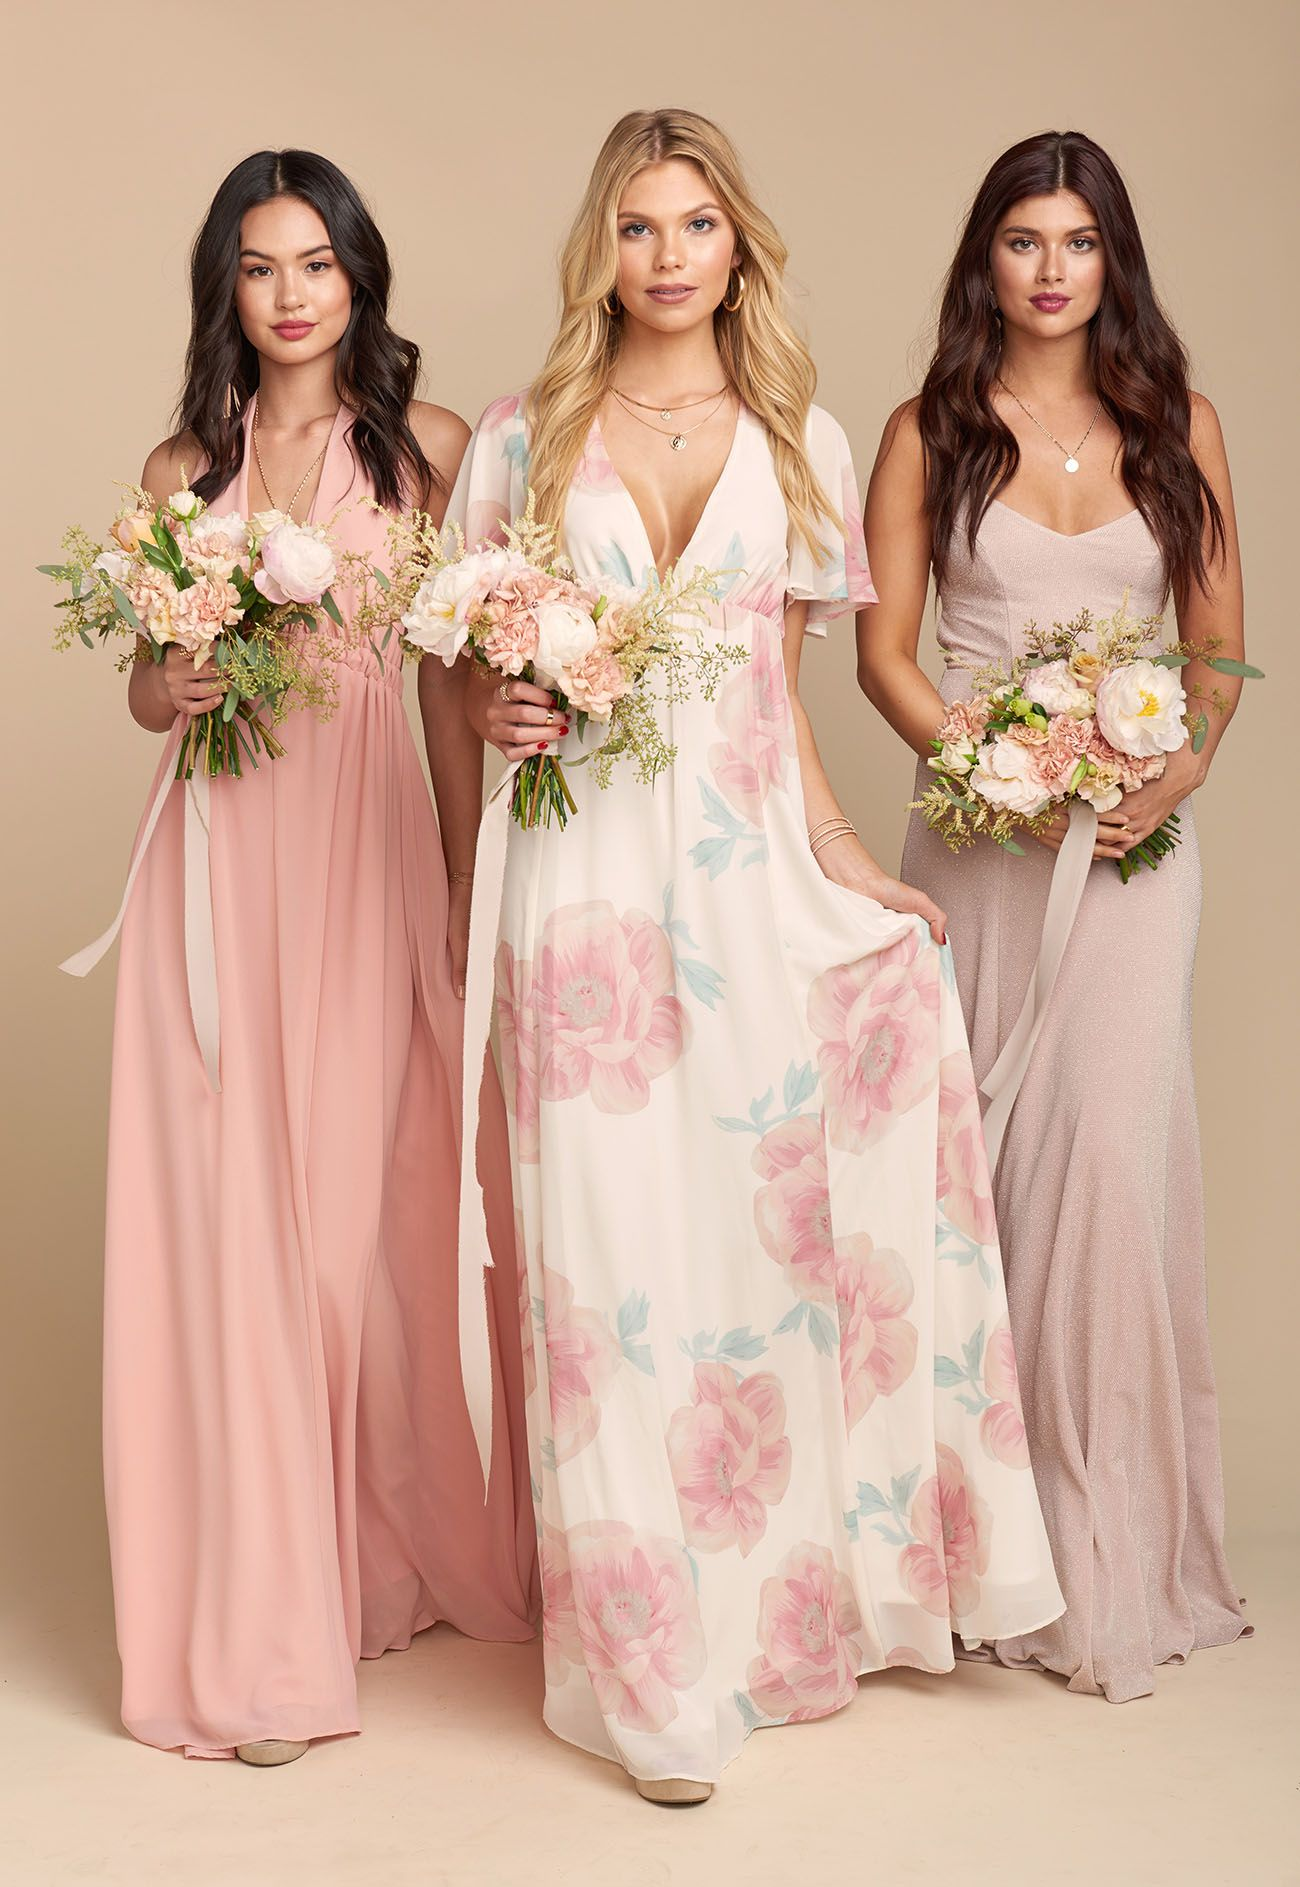 Pin On Bridesmaids Dresses Styling Inspiration